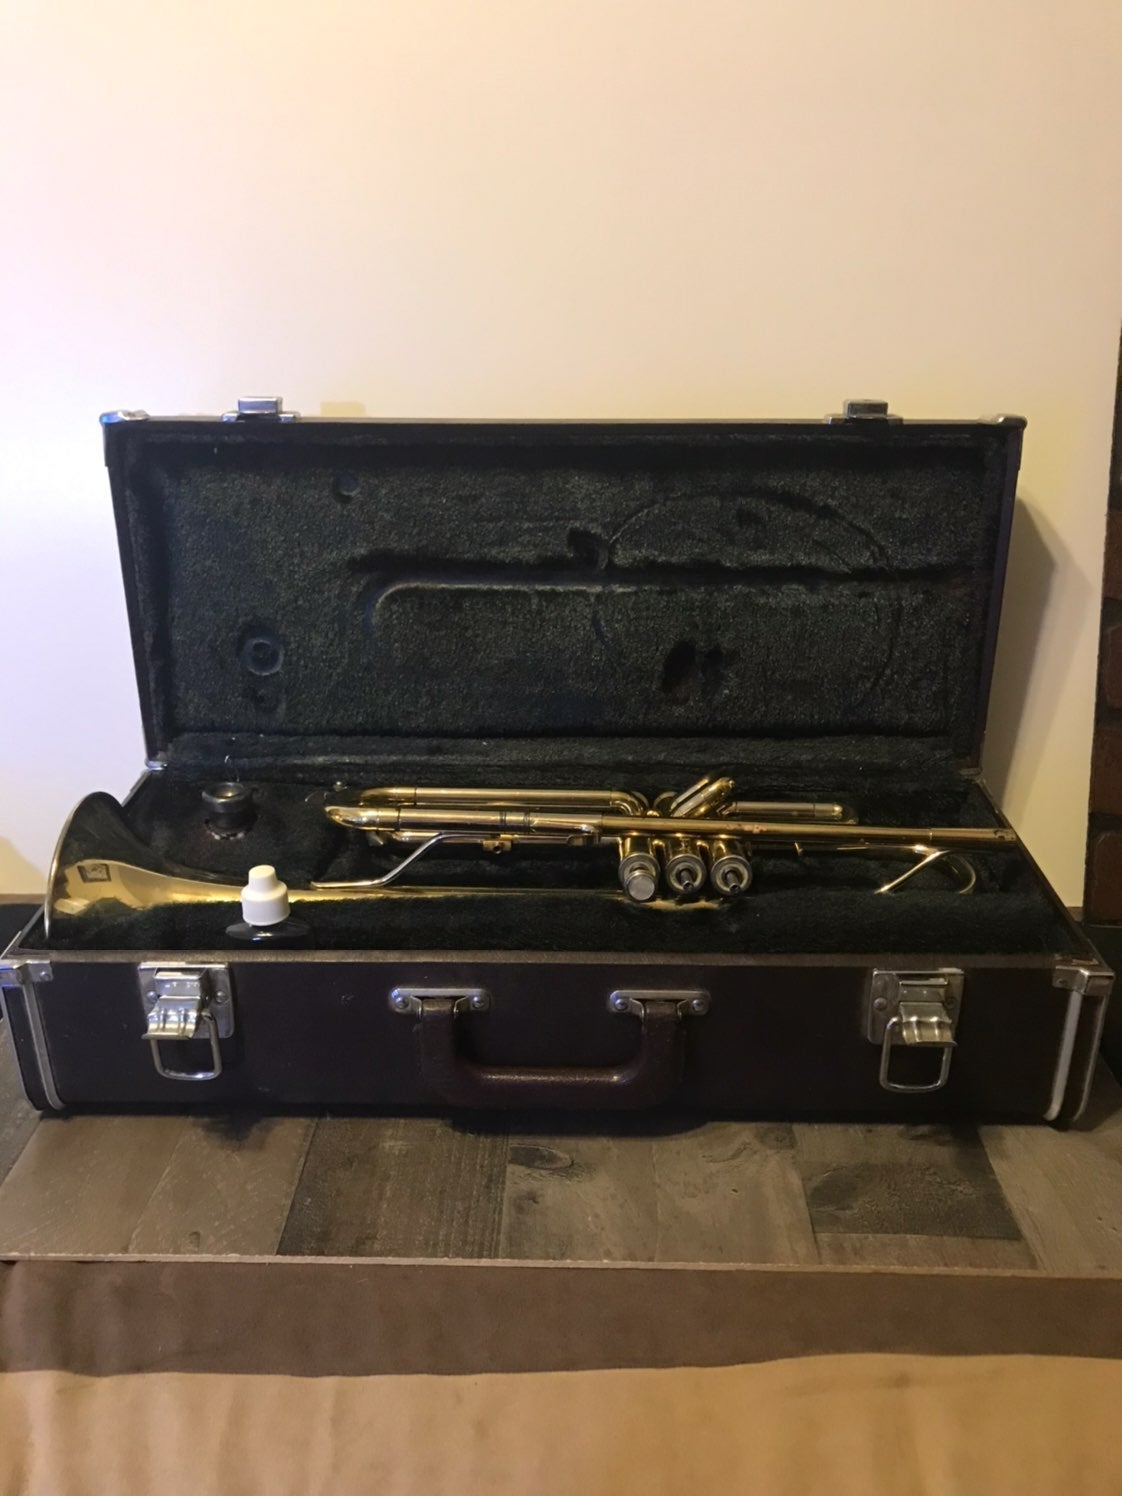 Blessing Trumpet with Hard shell Case 55